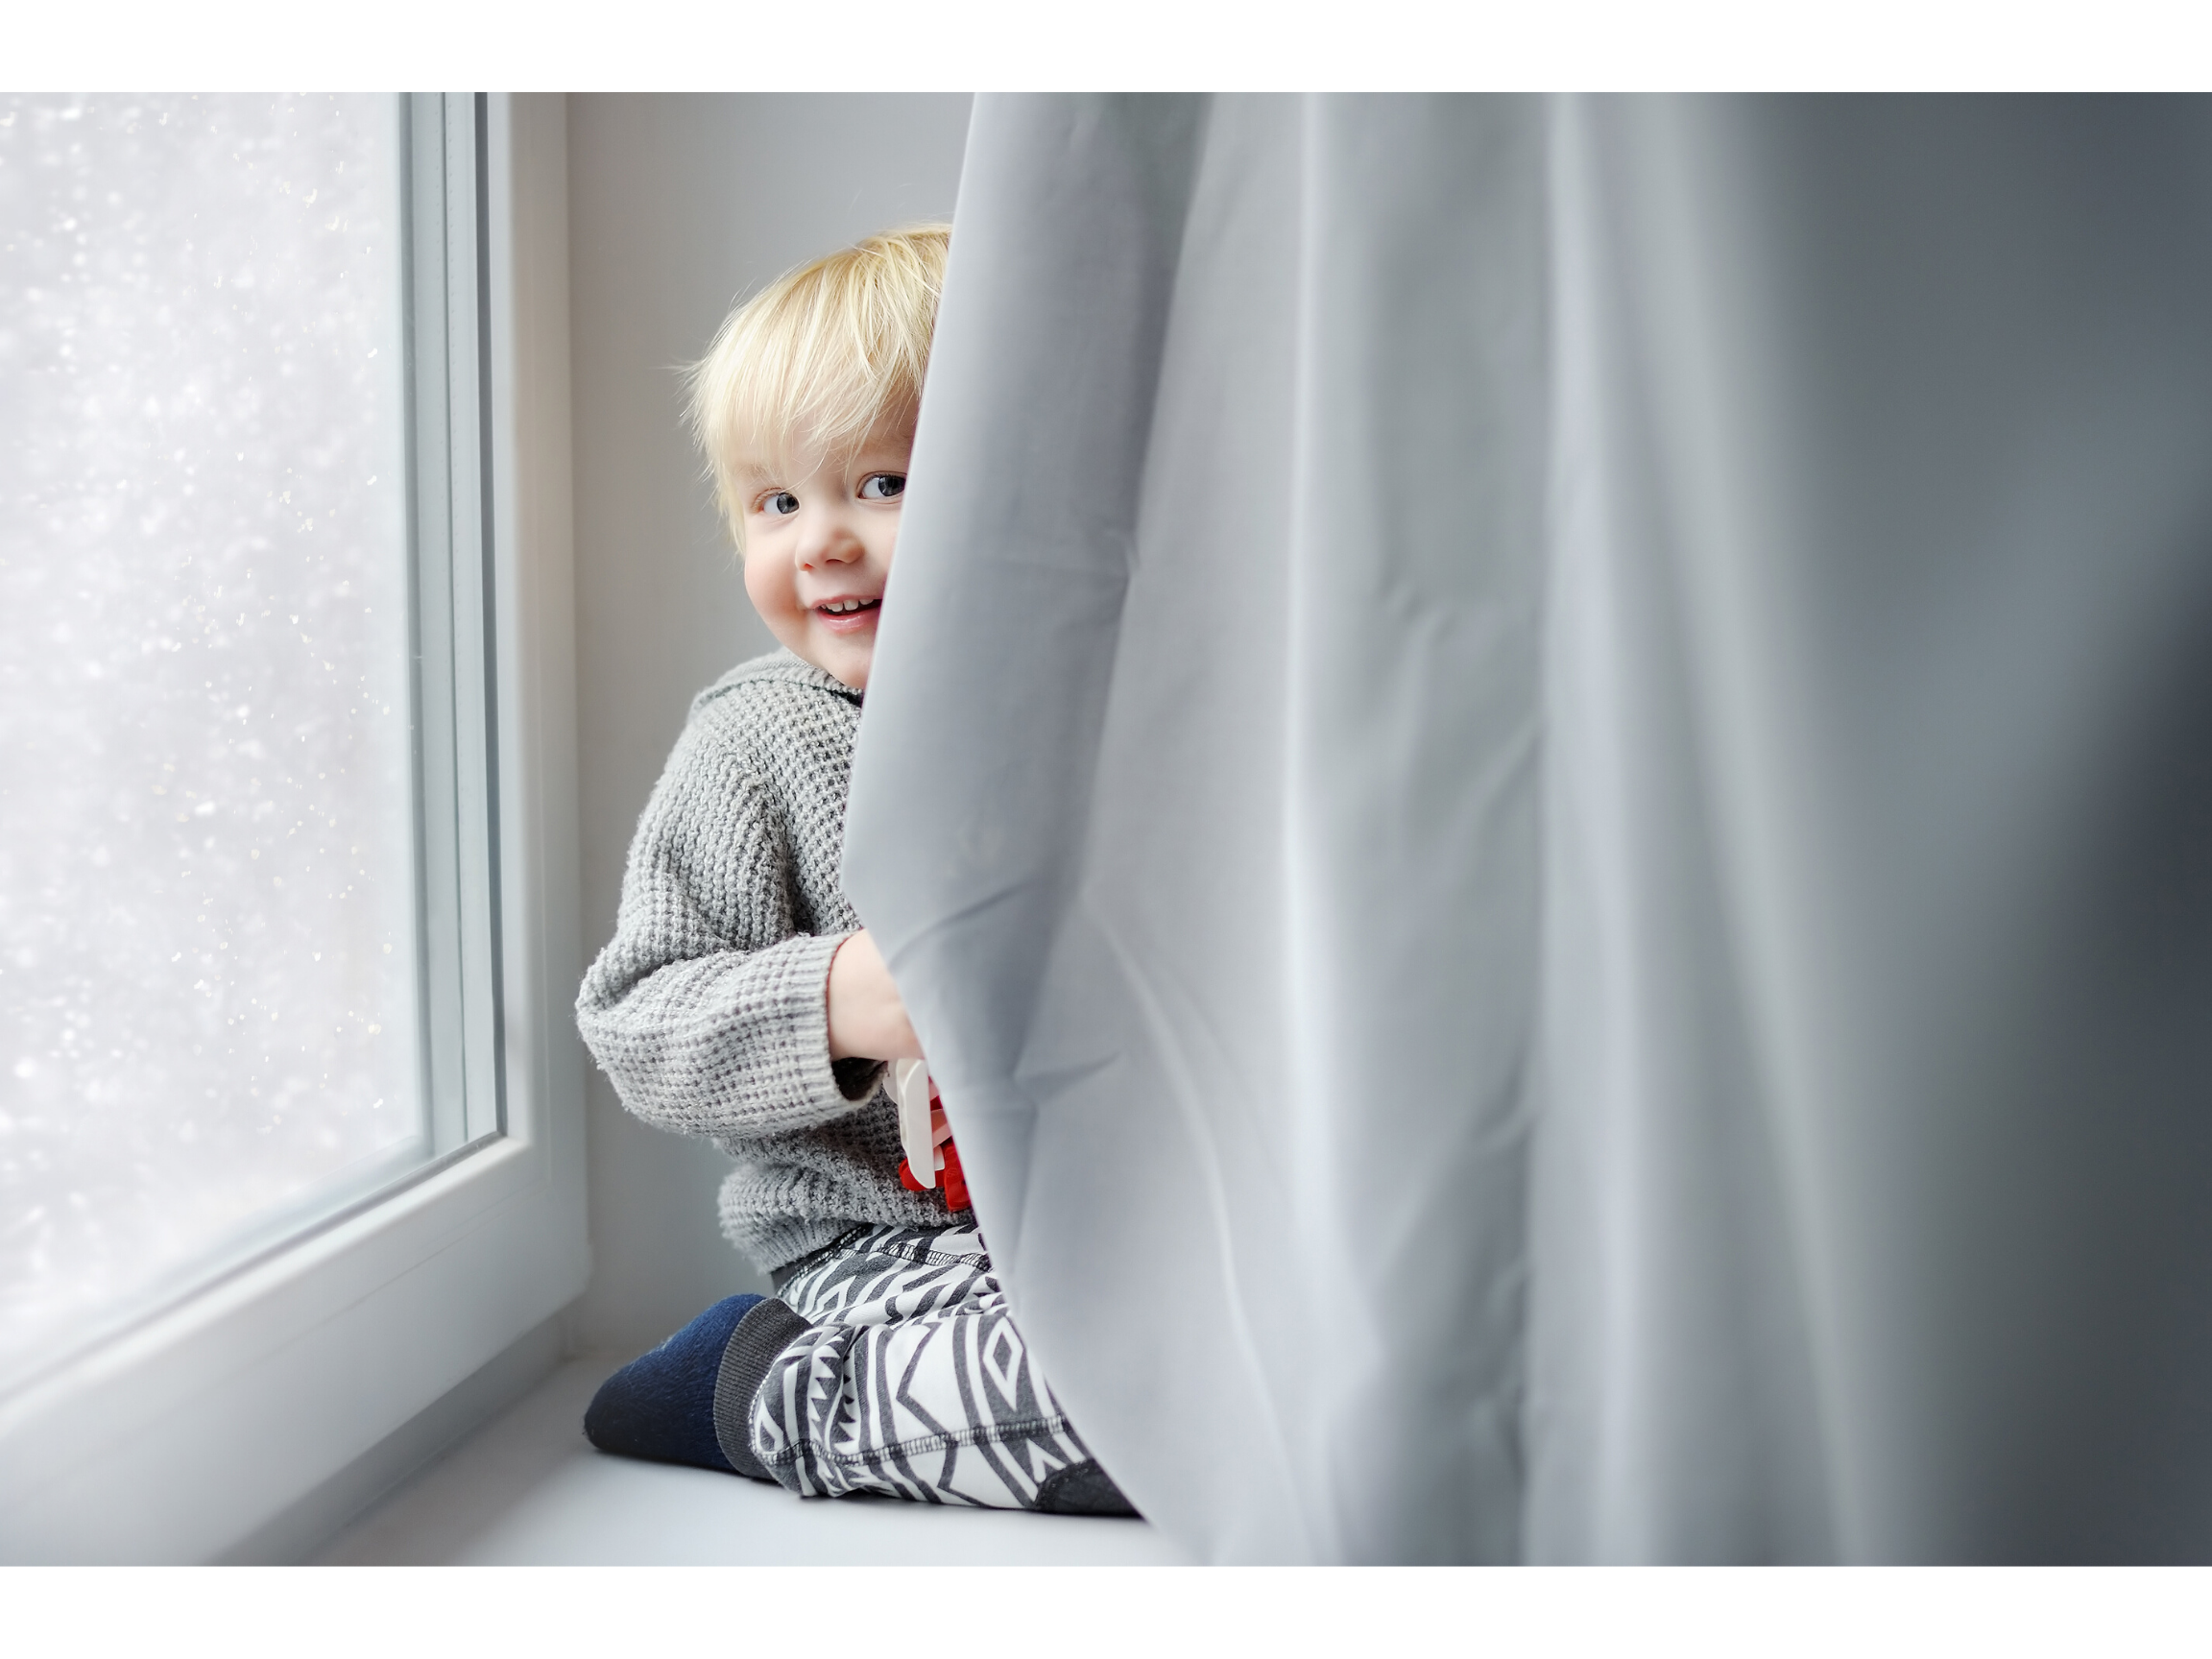 Blonde child playing behind a grey curtain preparing to return to his nursery during the COVID-19 pandemic